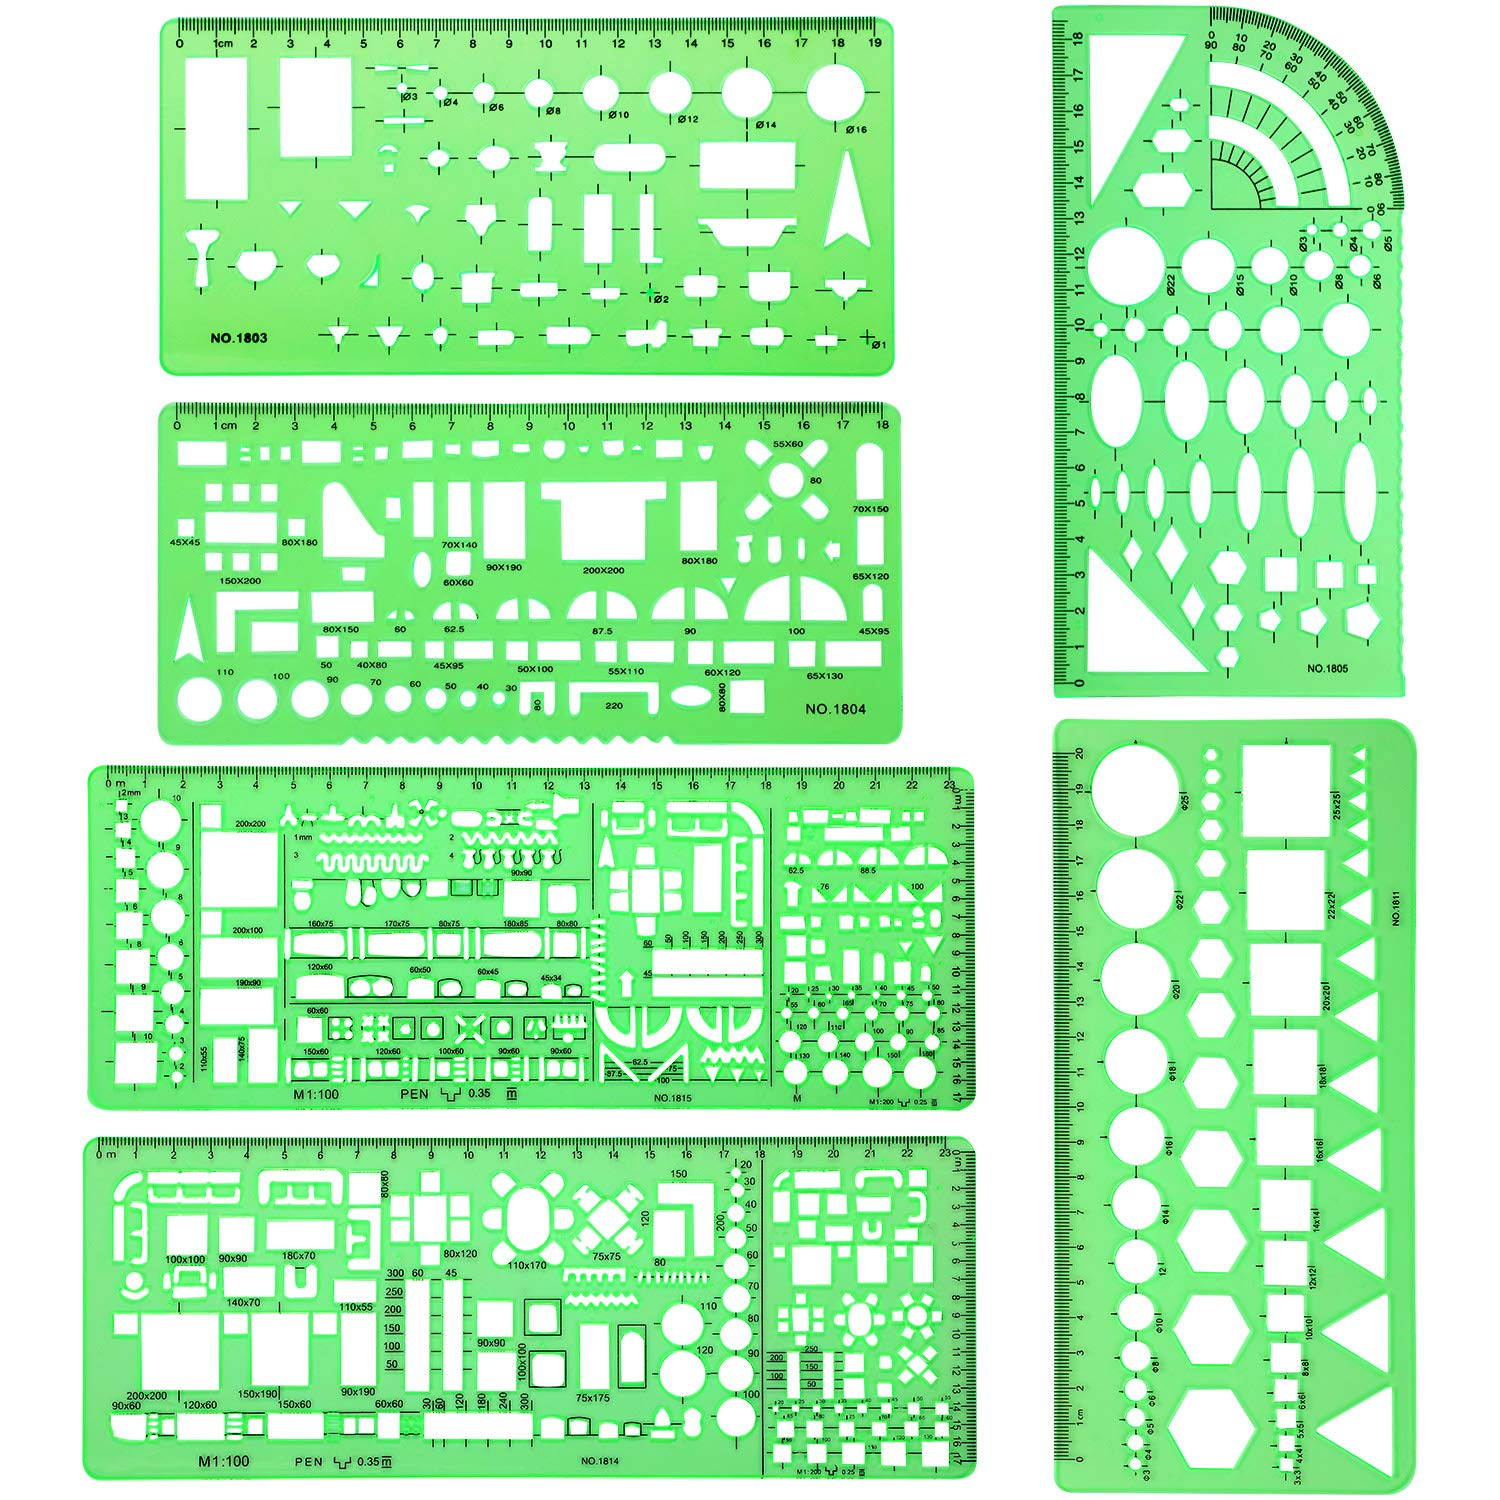 6 Pieces Plastic Measuring Templates Building Formwork Stencils Geometric Drawing Rulers for Office and School, Clear Green by Shappy